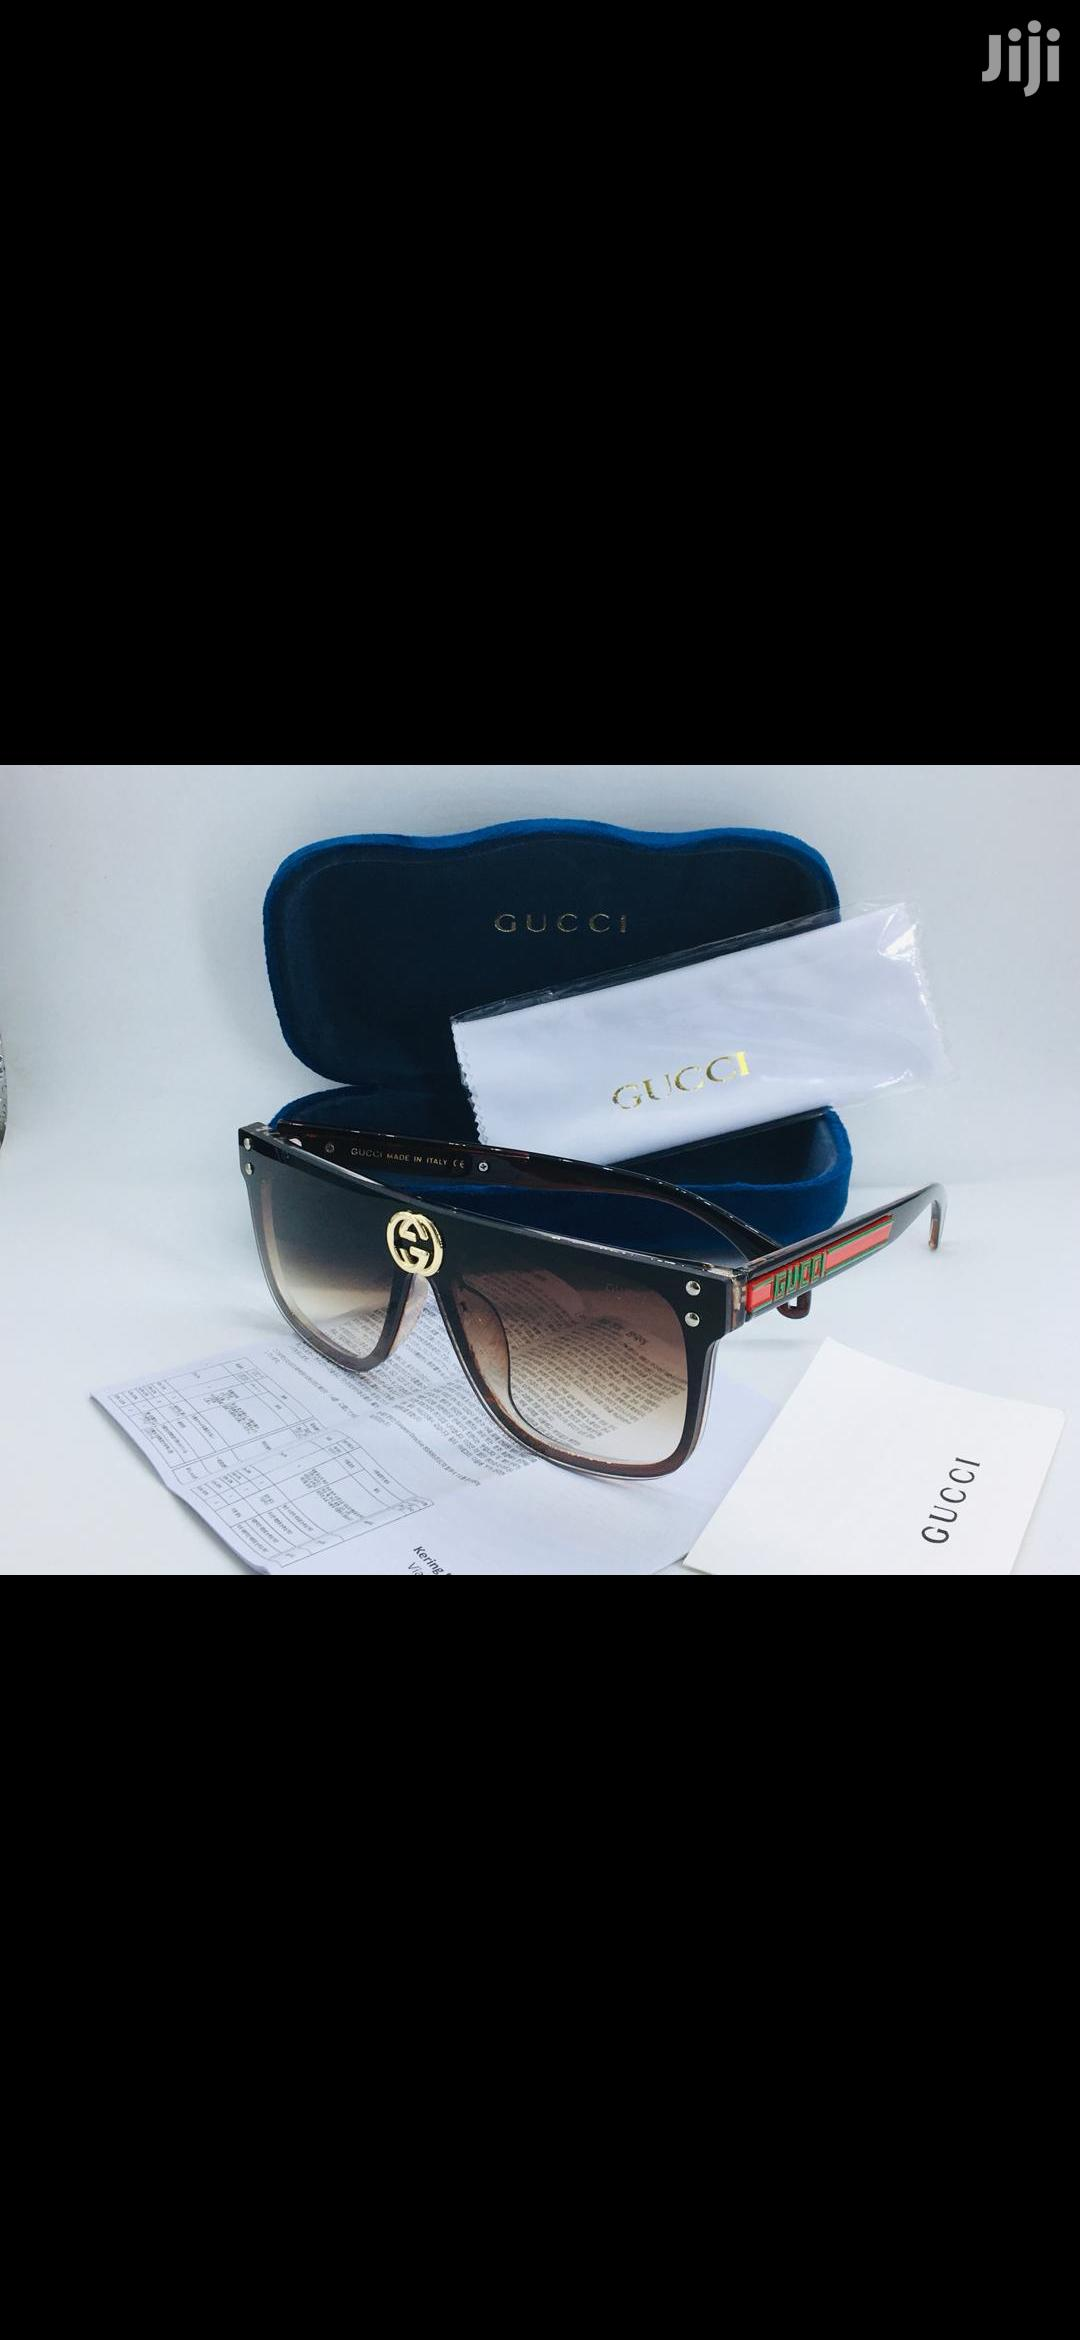 Gucci Sunglasses | Clothing Accessories for sale in Surulere, Lagos State, Nigeria